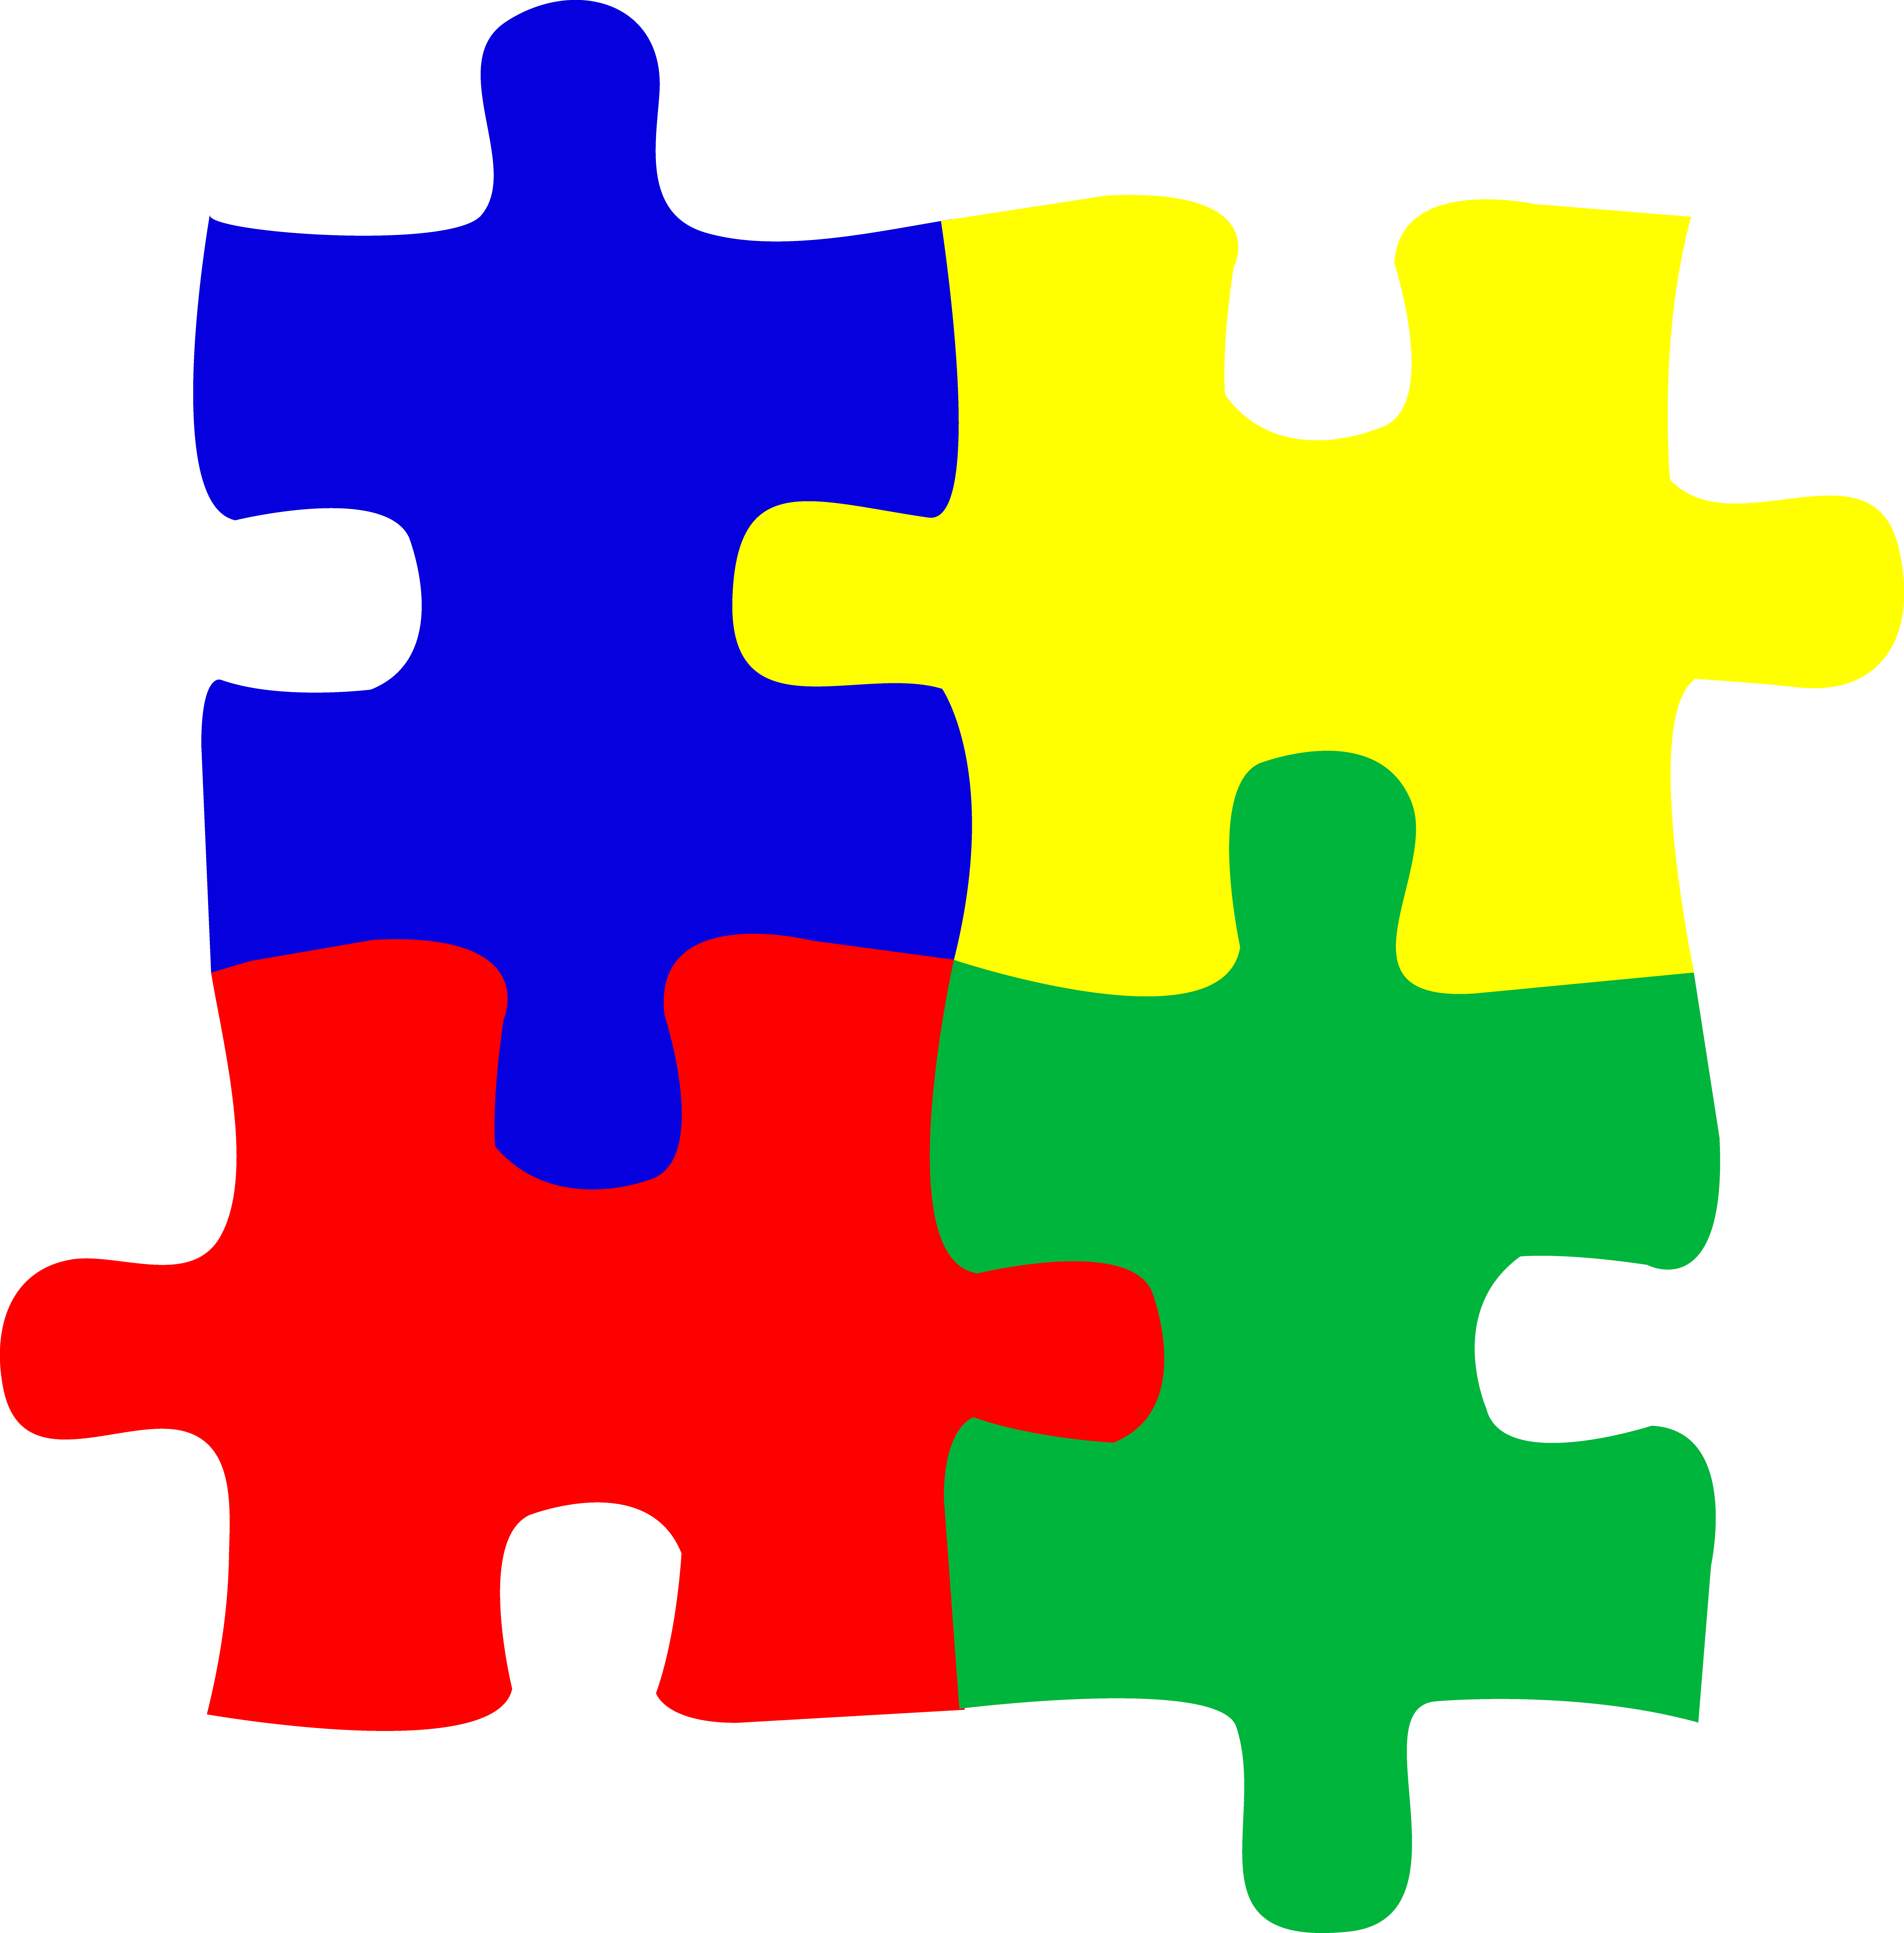 Aspergers syndrom clipart